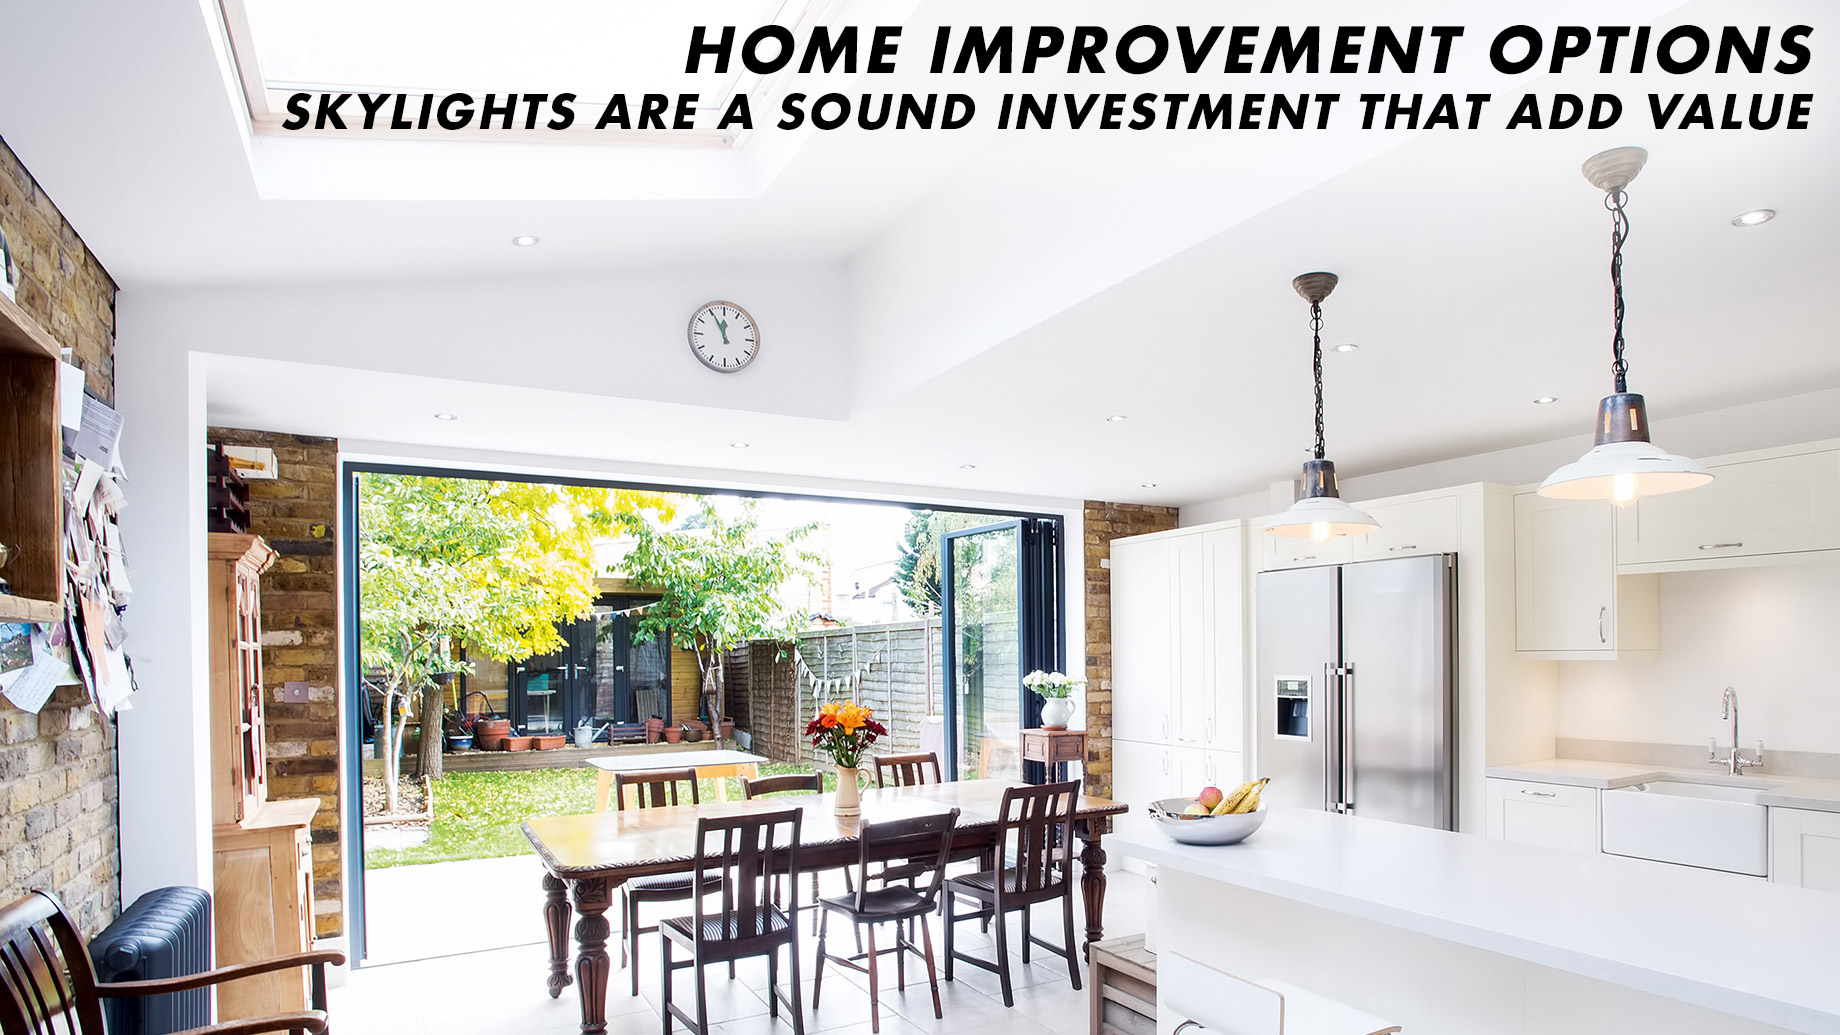 Home Improvement Options - Skylights Are a Sound Investment That Add Value